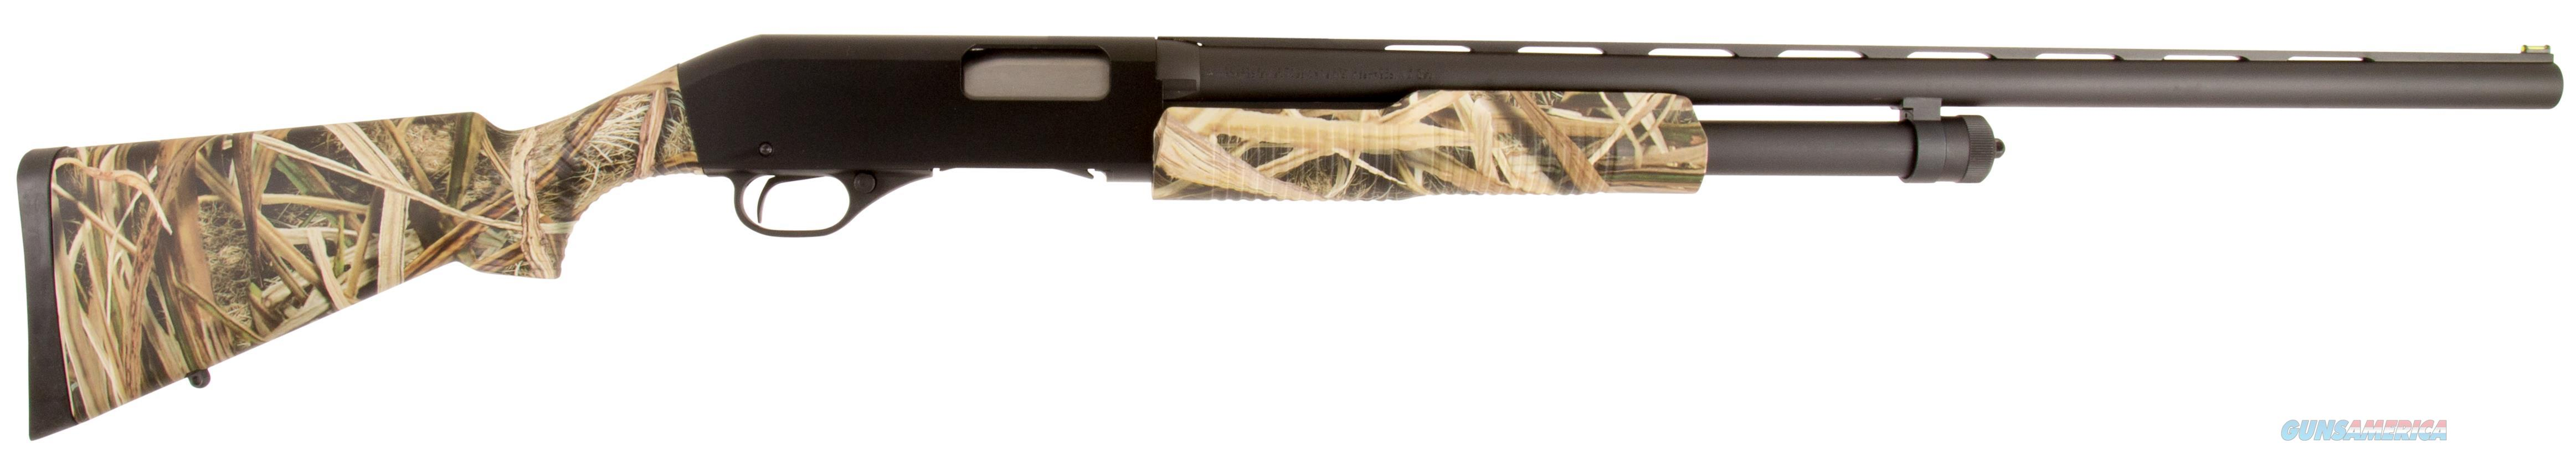 "Savage 22563 320 Pump 12Ga 26"" 3"" Mossy Oak Shadow Grass Blades Synthetic Stk Blk 22563  Guns > Shotguns > S Misc Shotguns"